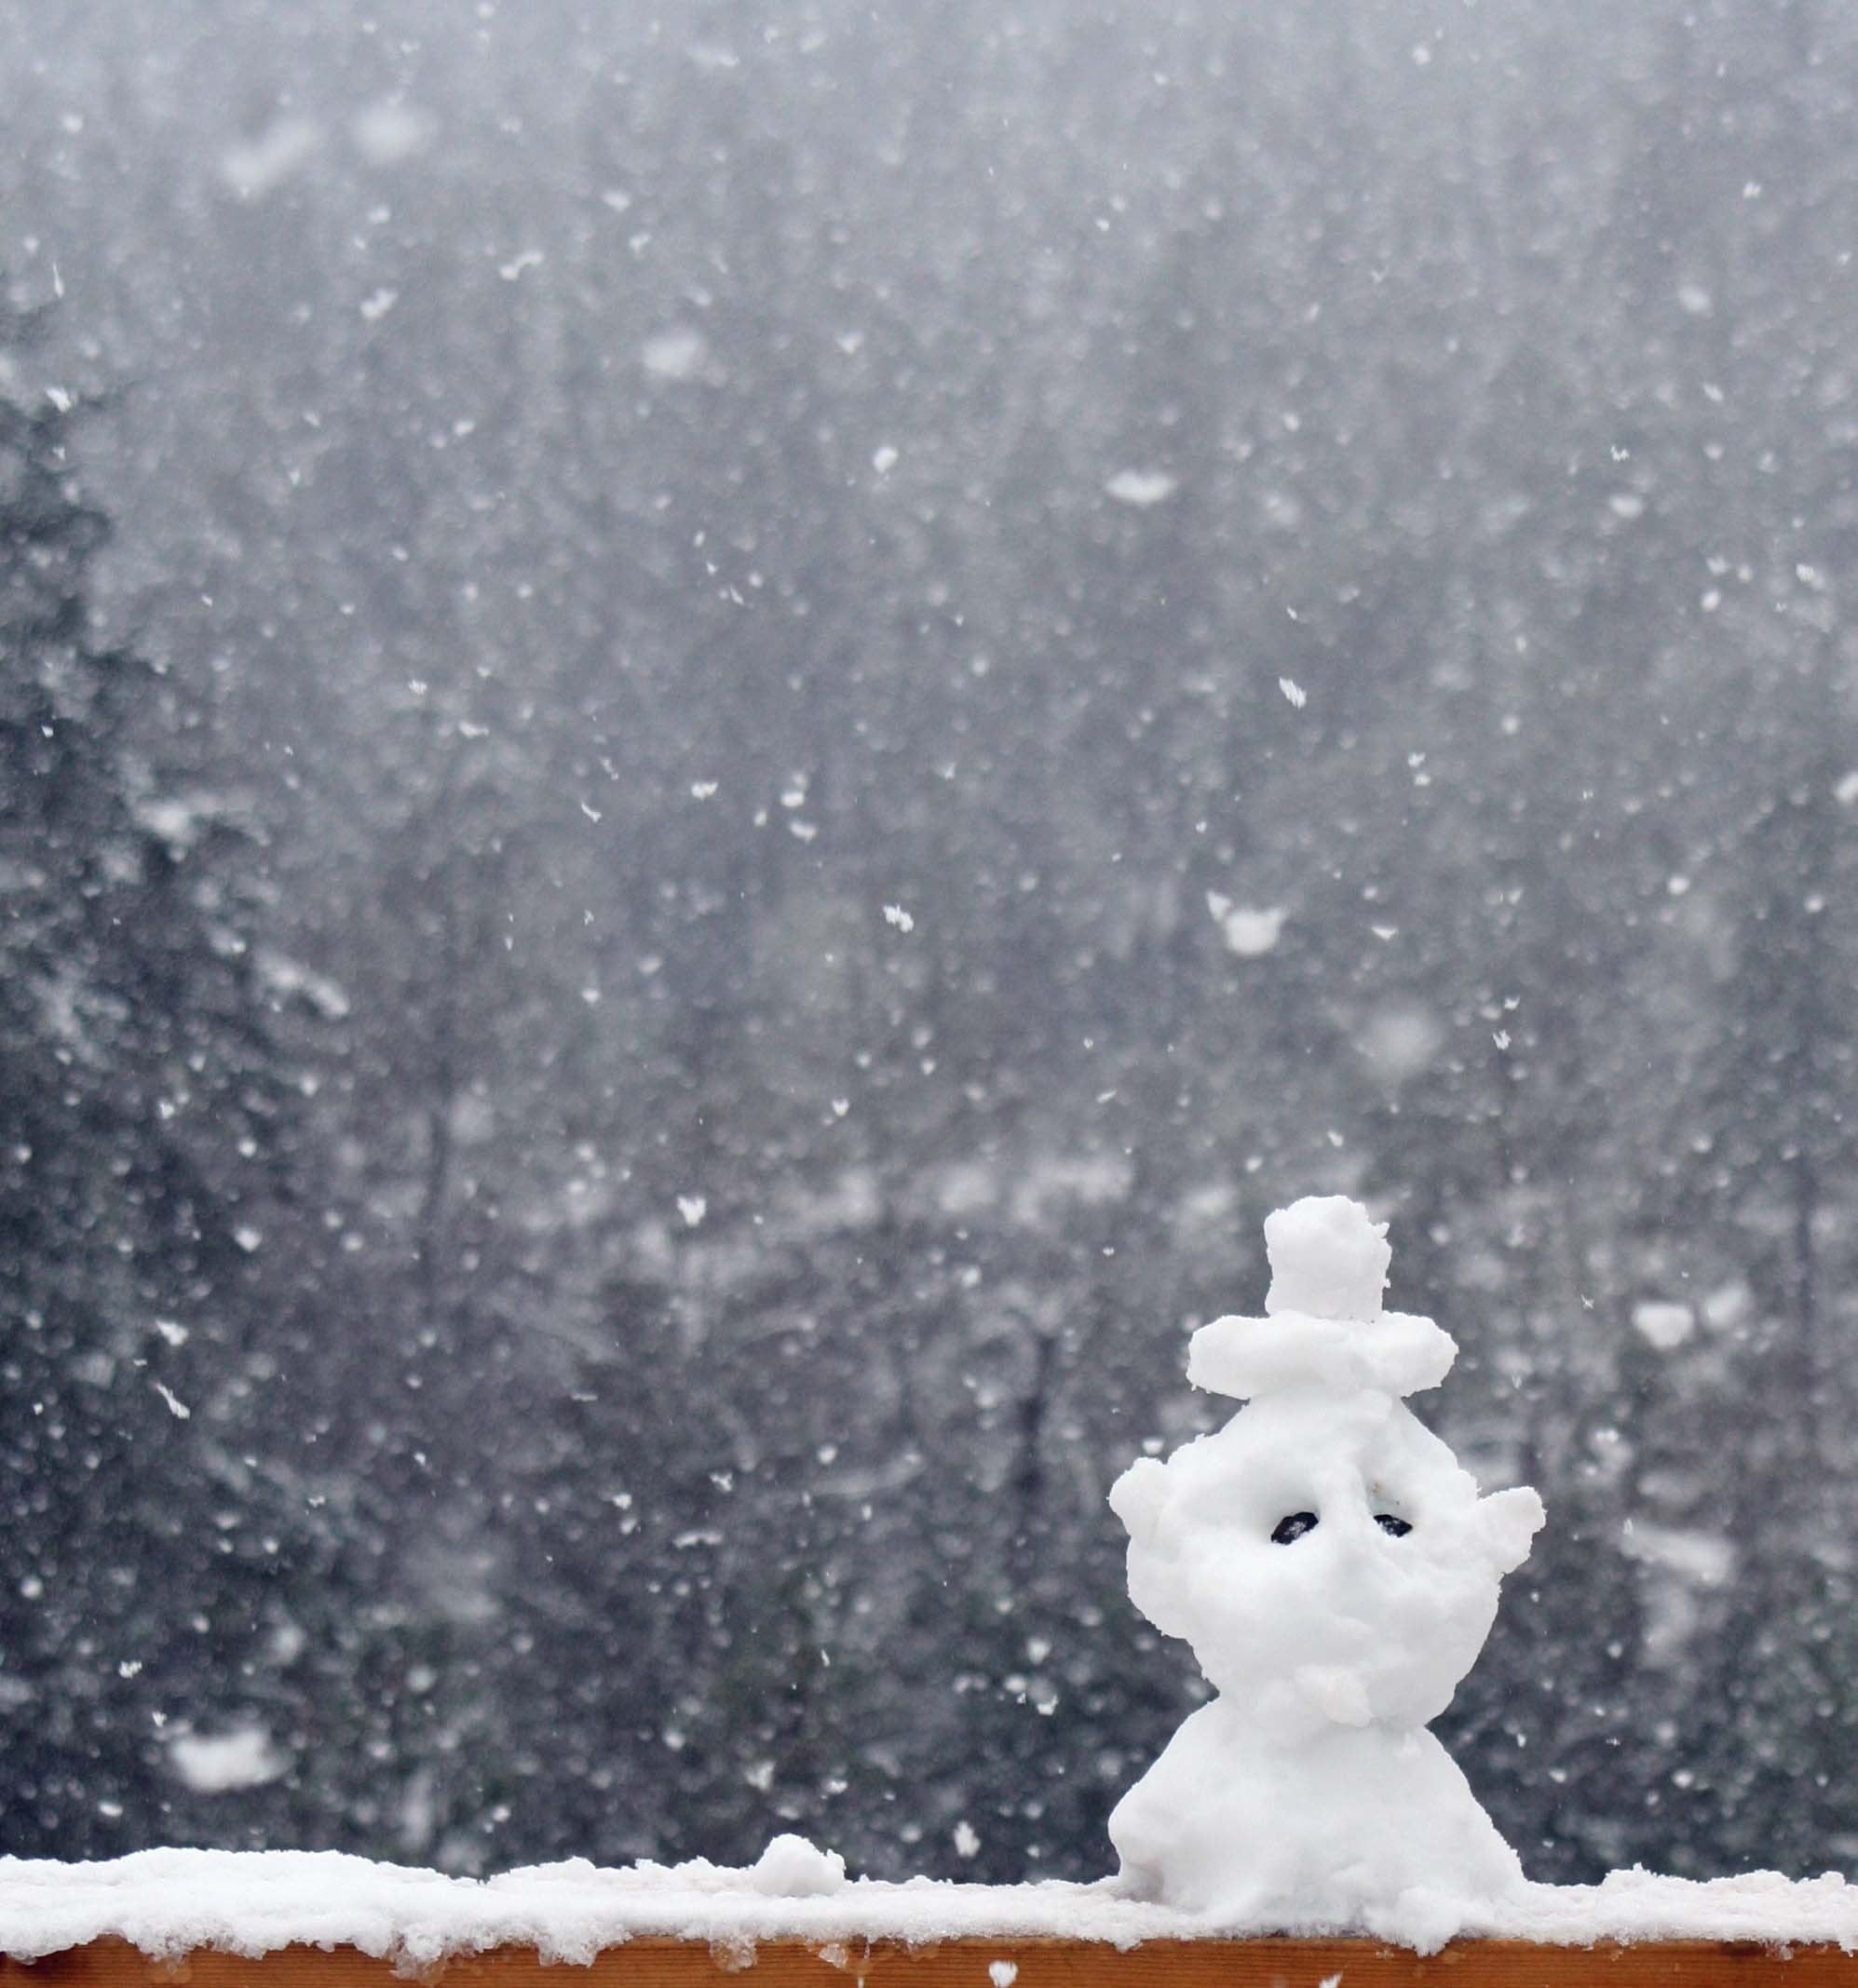 And what is a snowstorm without a snowman? I called this guy George. He reminded me of someone.